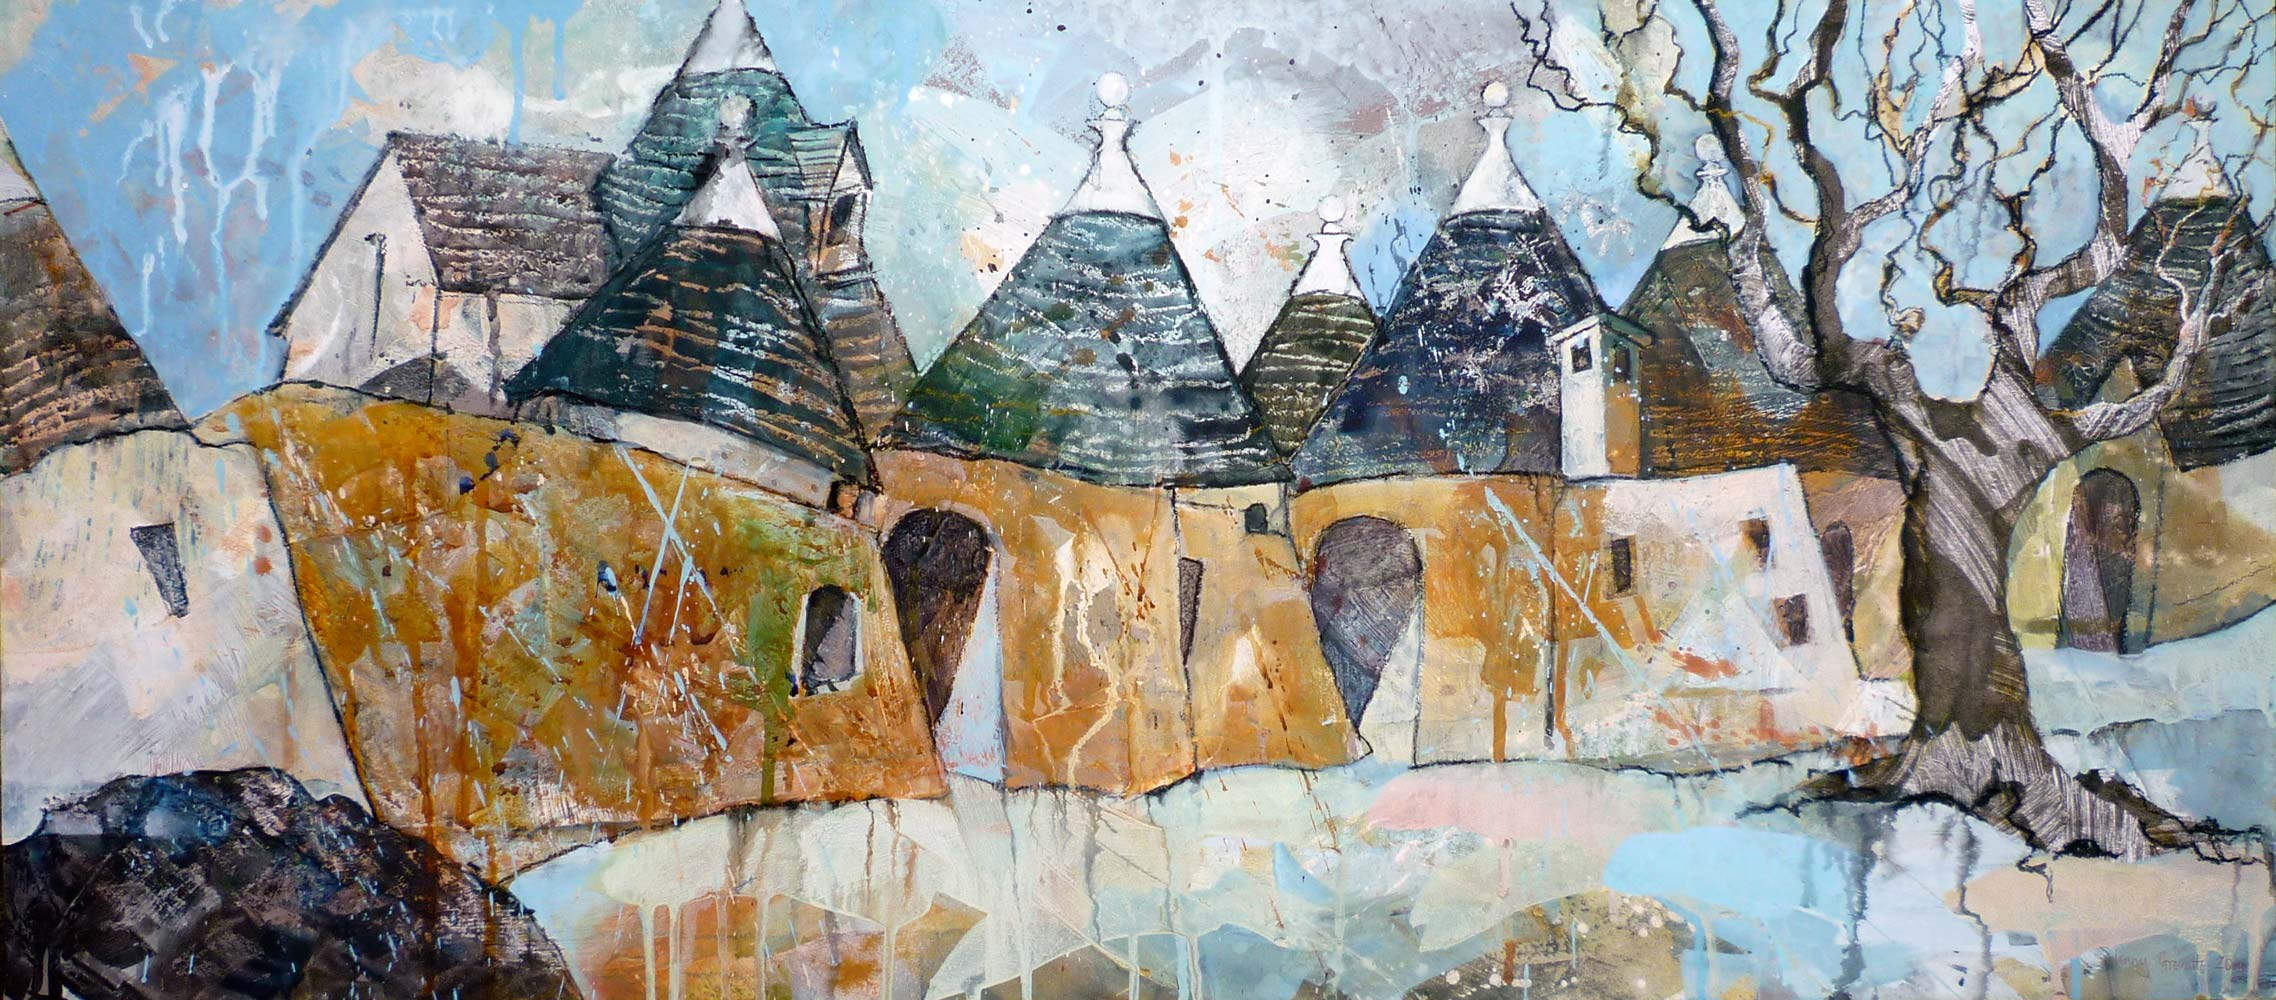 Trulli houses in a row